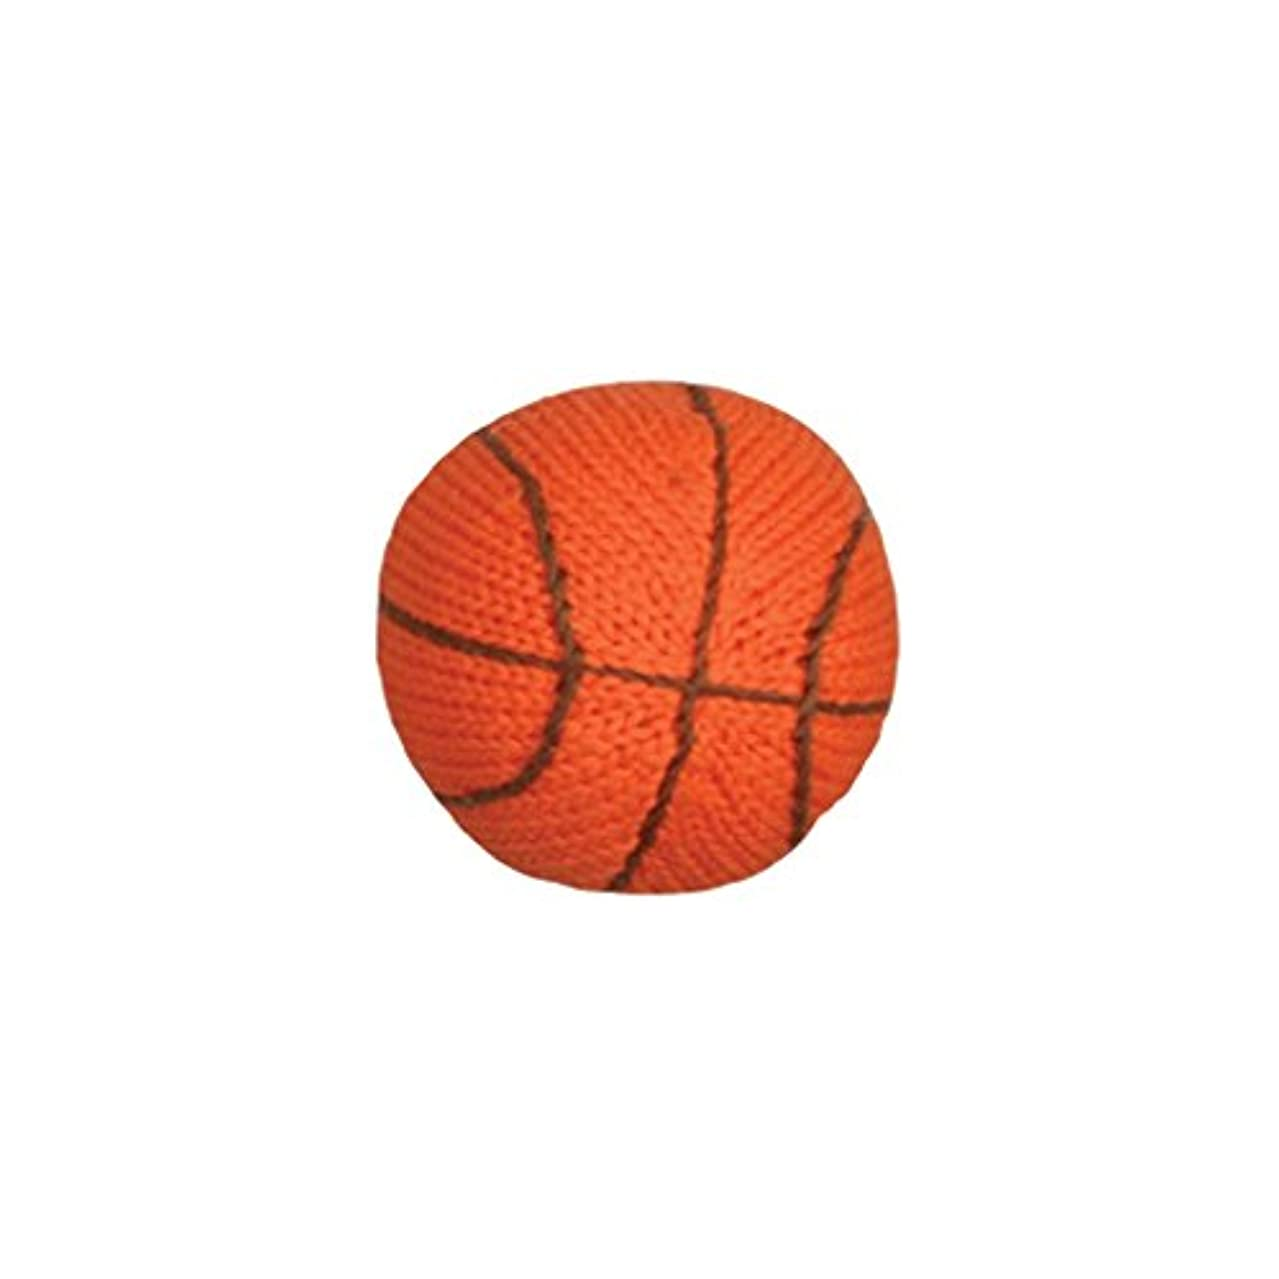 Zubels Baby Hand-Knit Bill The Basketball Rattle Toy, All-Natural Fibers, Eco-Friendly, 100% Cotton